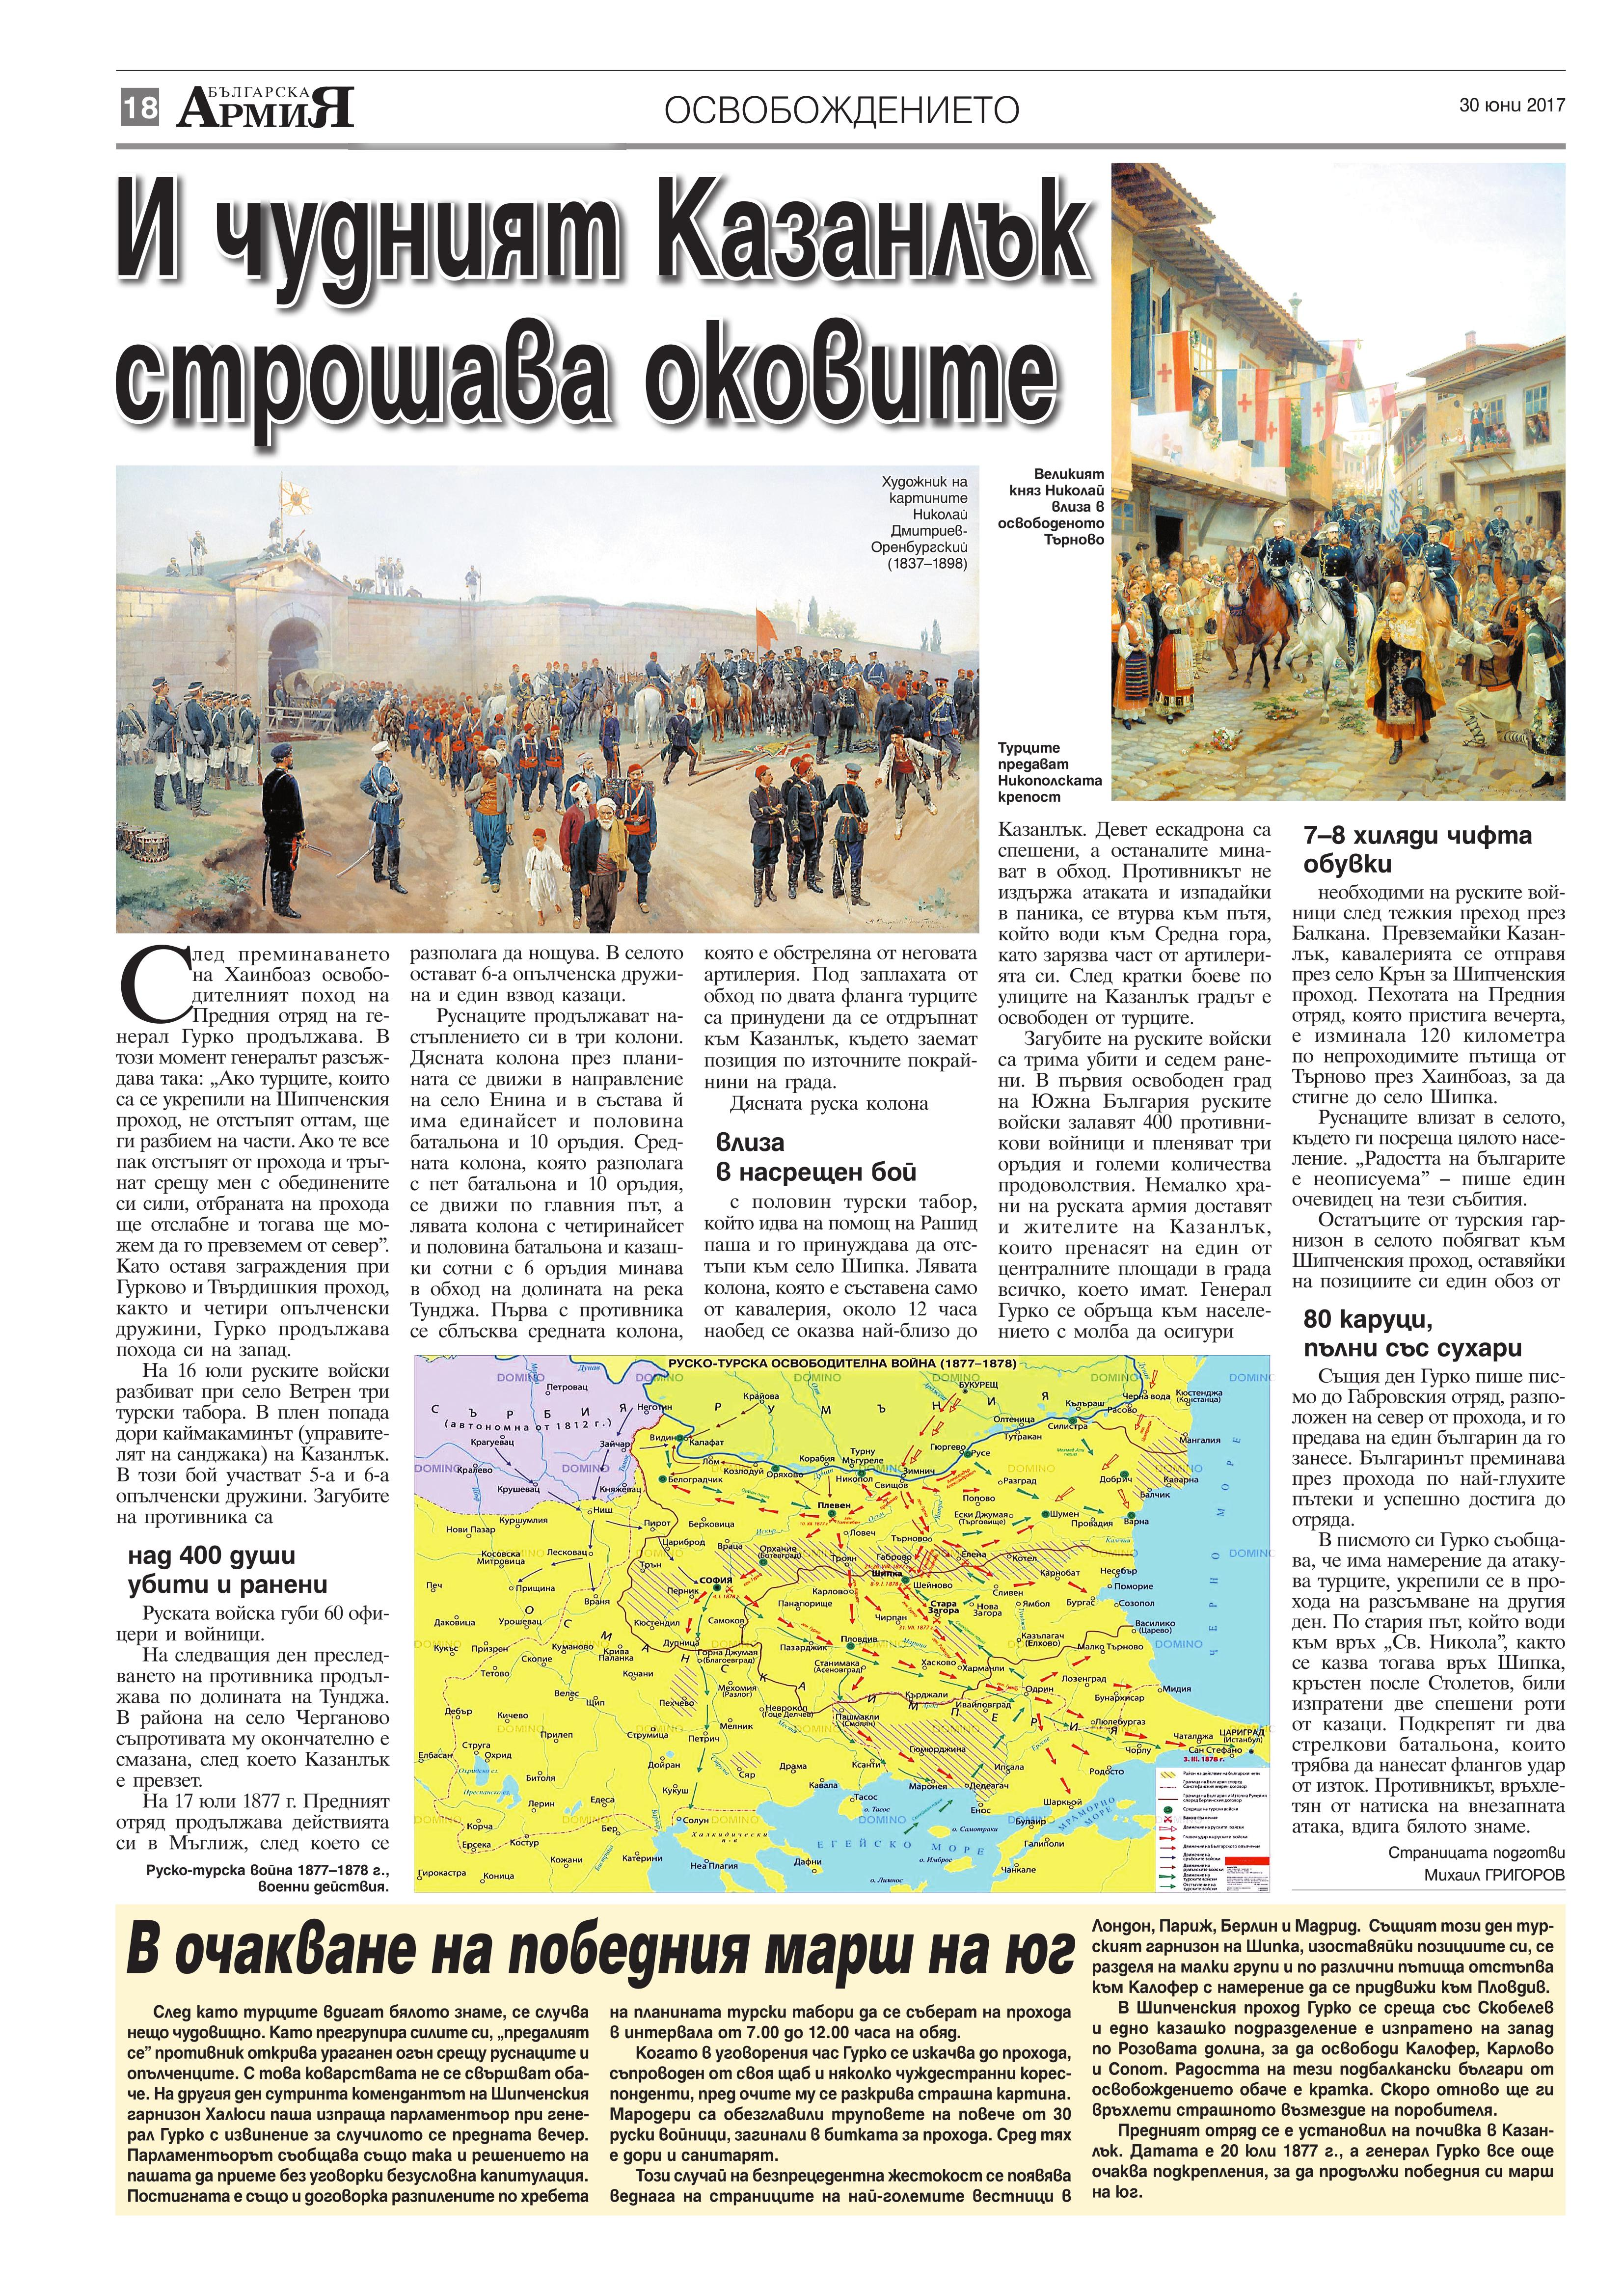 https://www.armymedia.bg/wp-content/uploads/2015/06/18.page1_-23.jpg